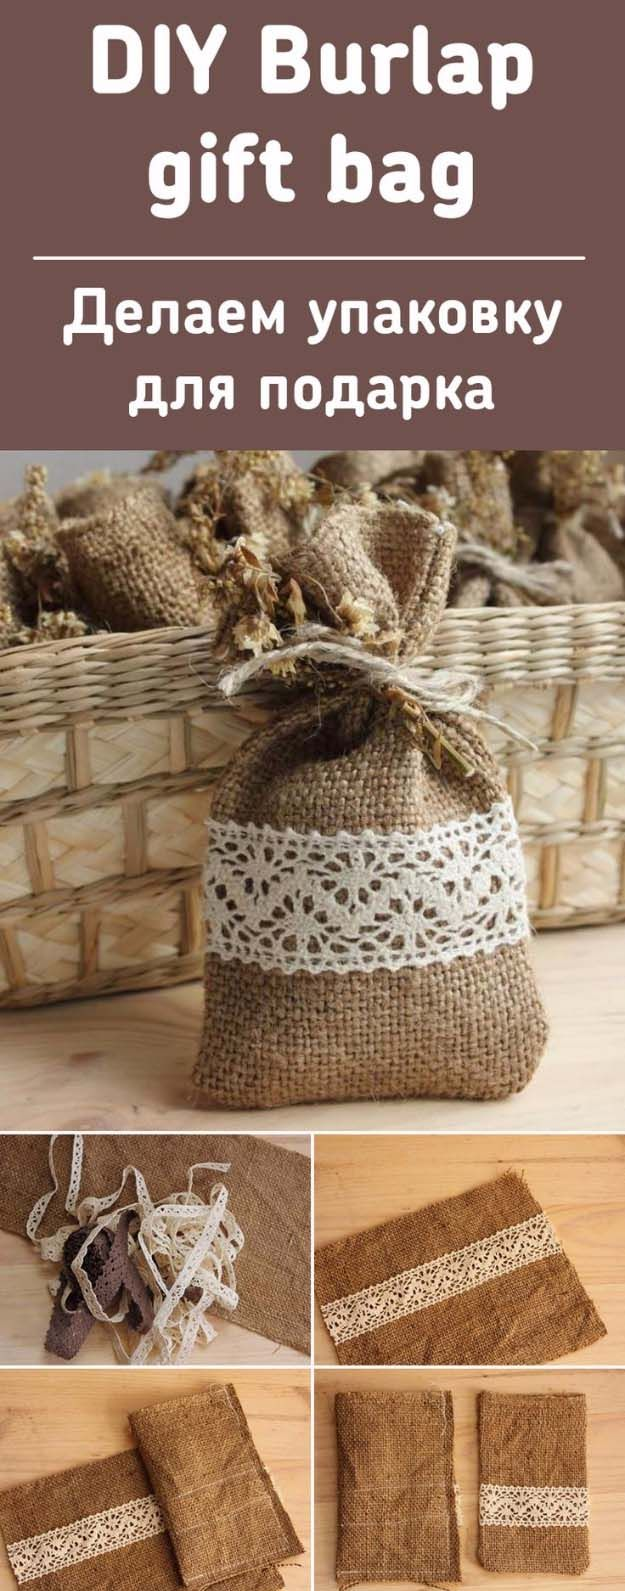 25 best ideas about burlap gift bags on pinterest Burlap bag decorating ideas